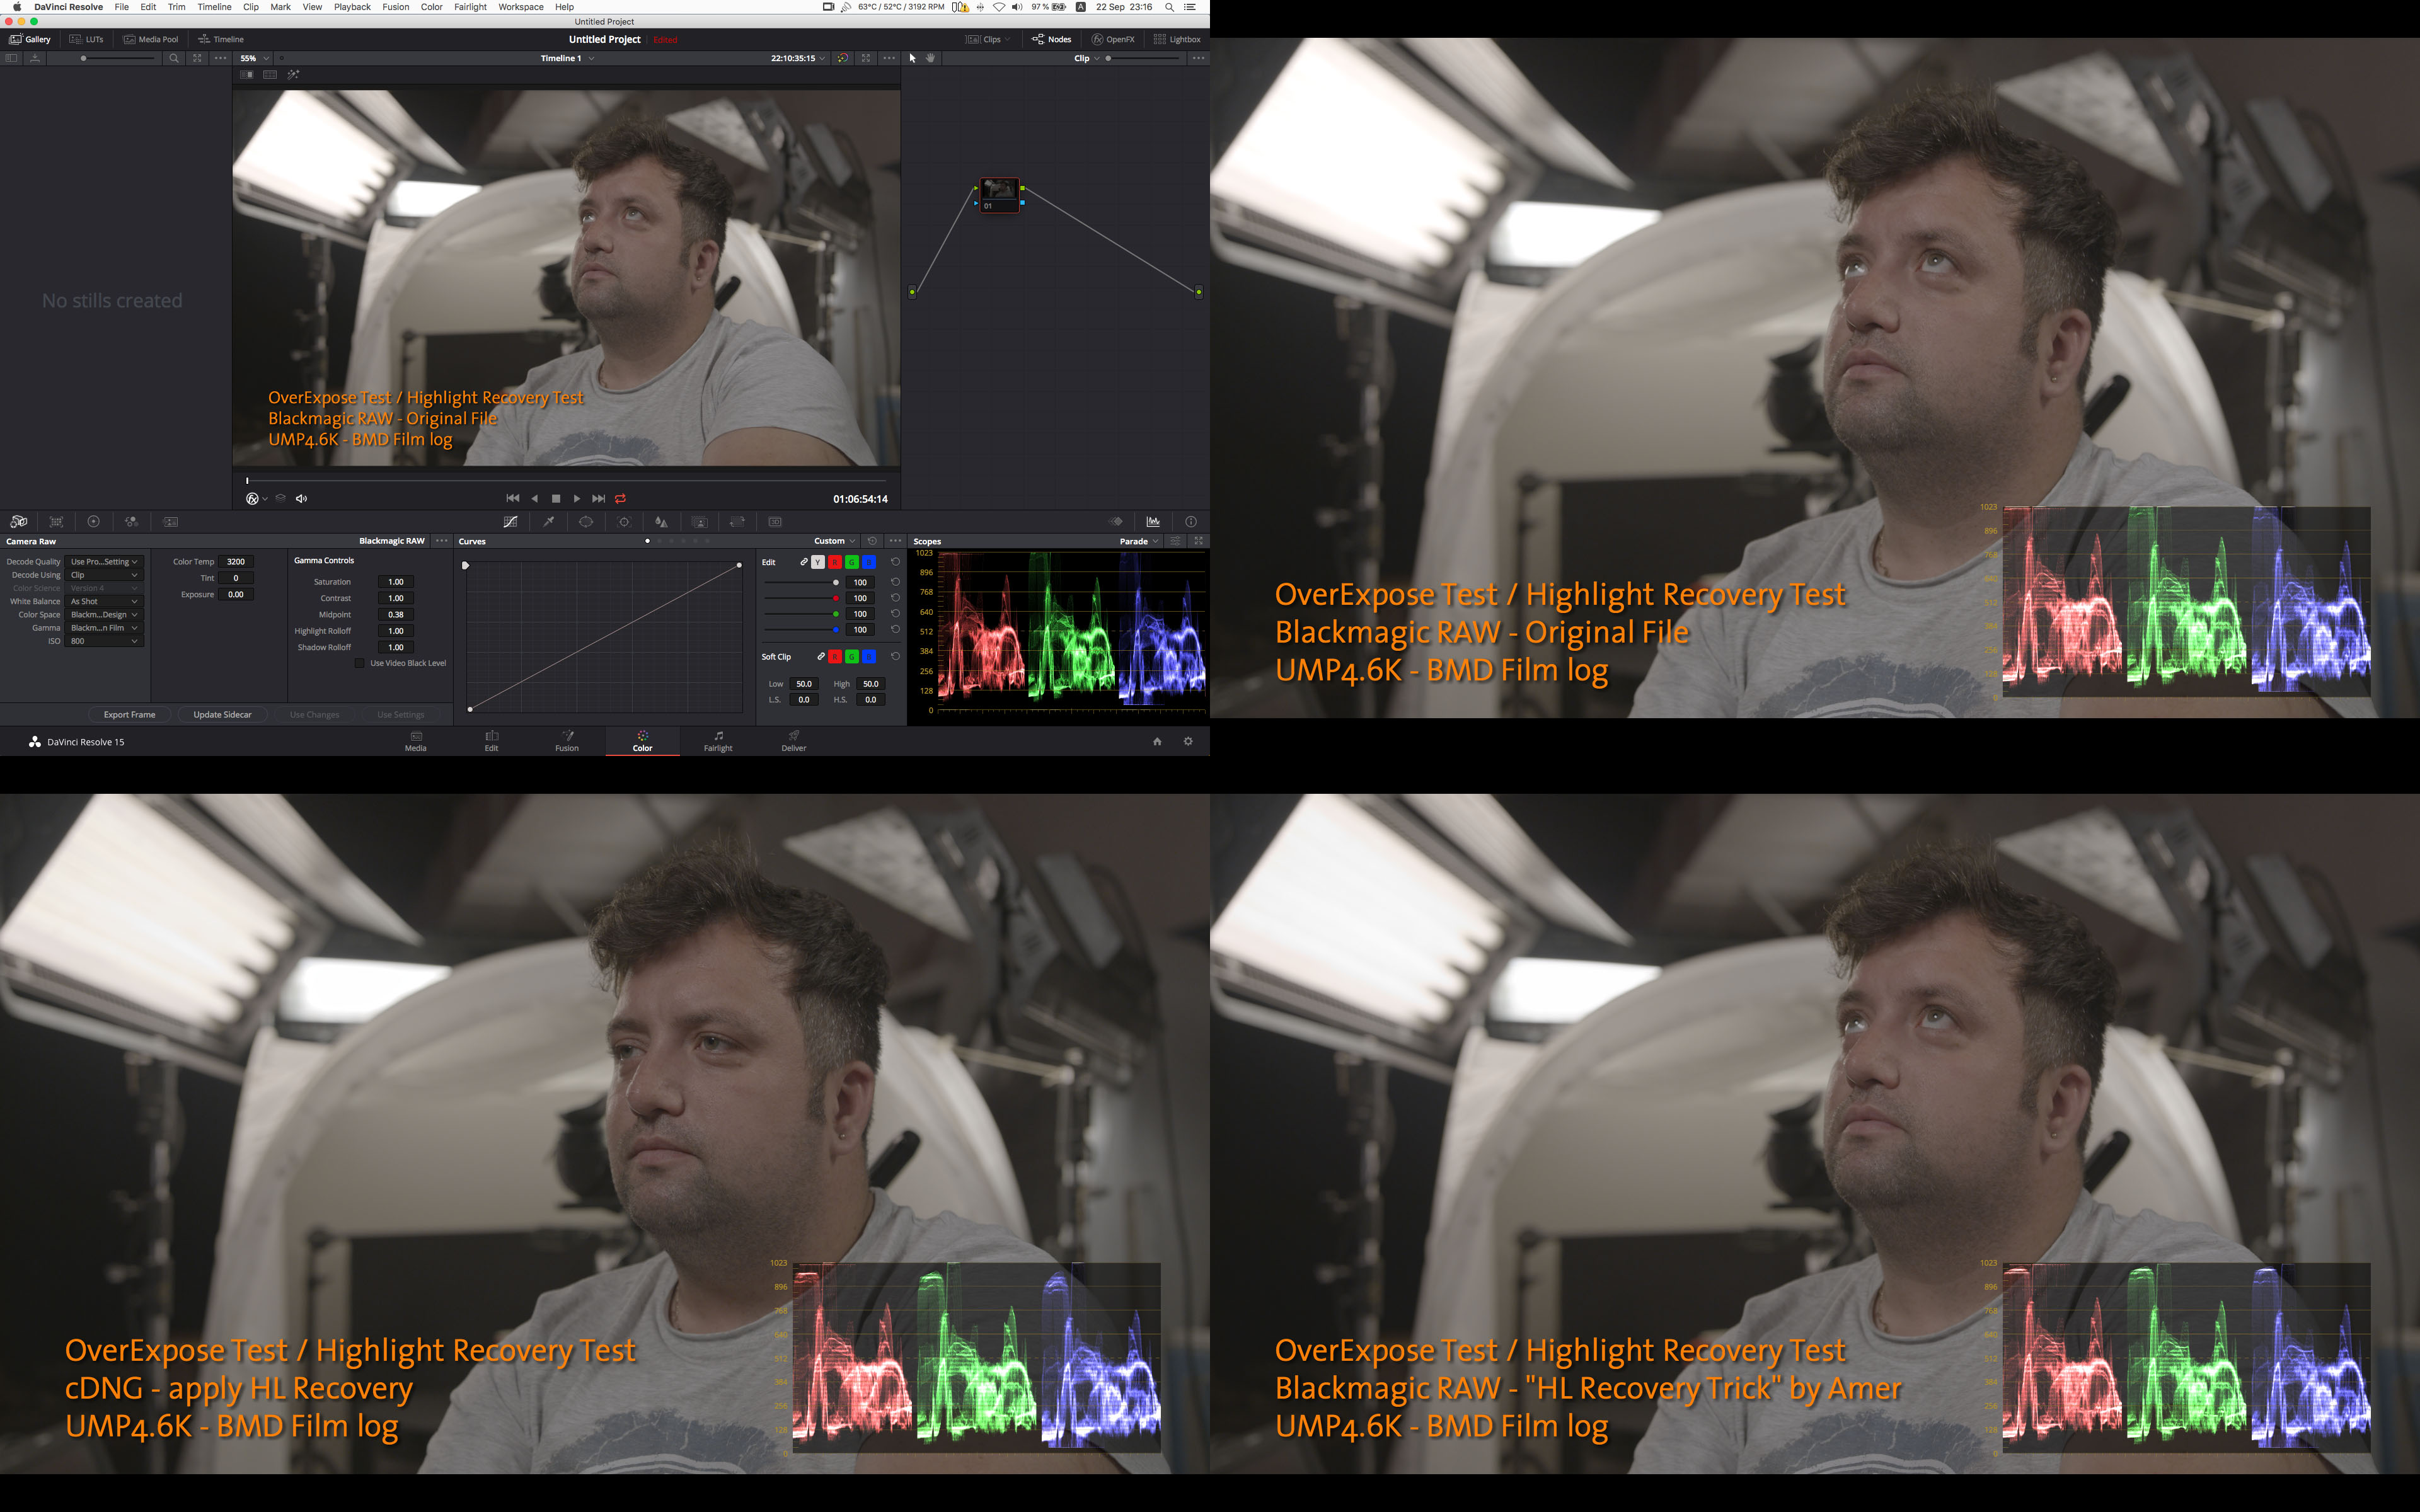 Blackmagic RAW - HL Recovery Trick by Amer.jpg